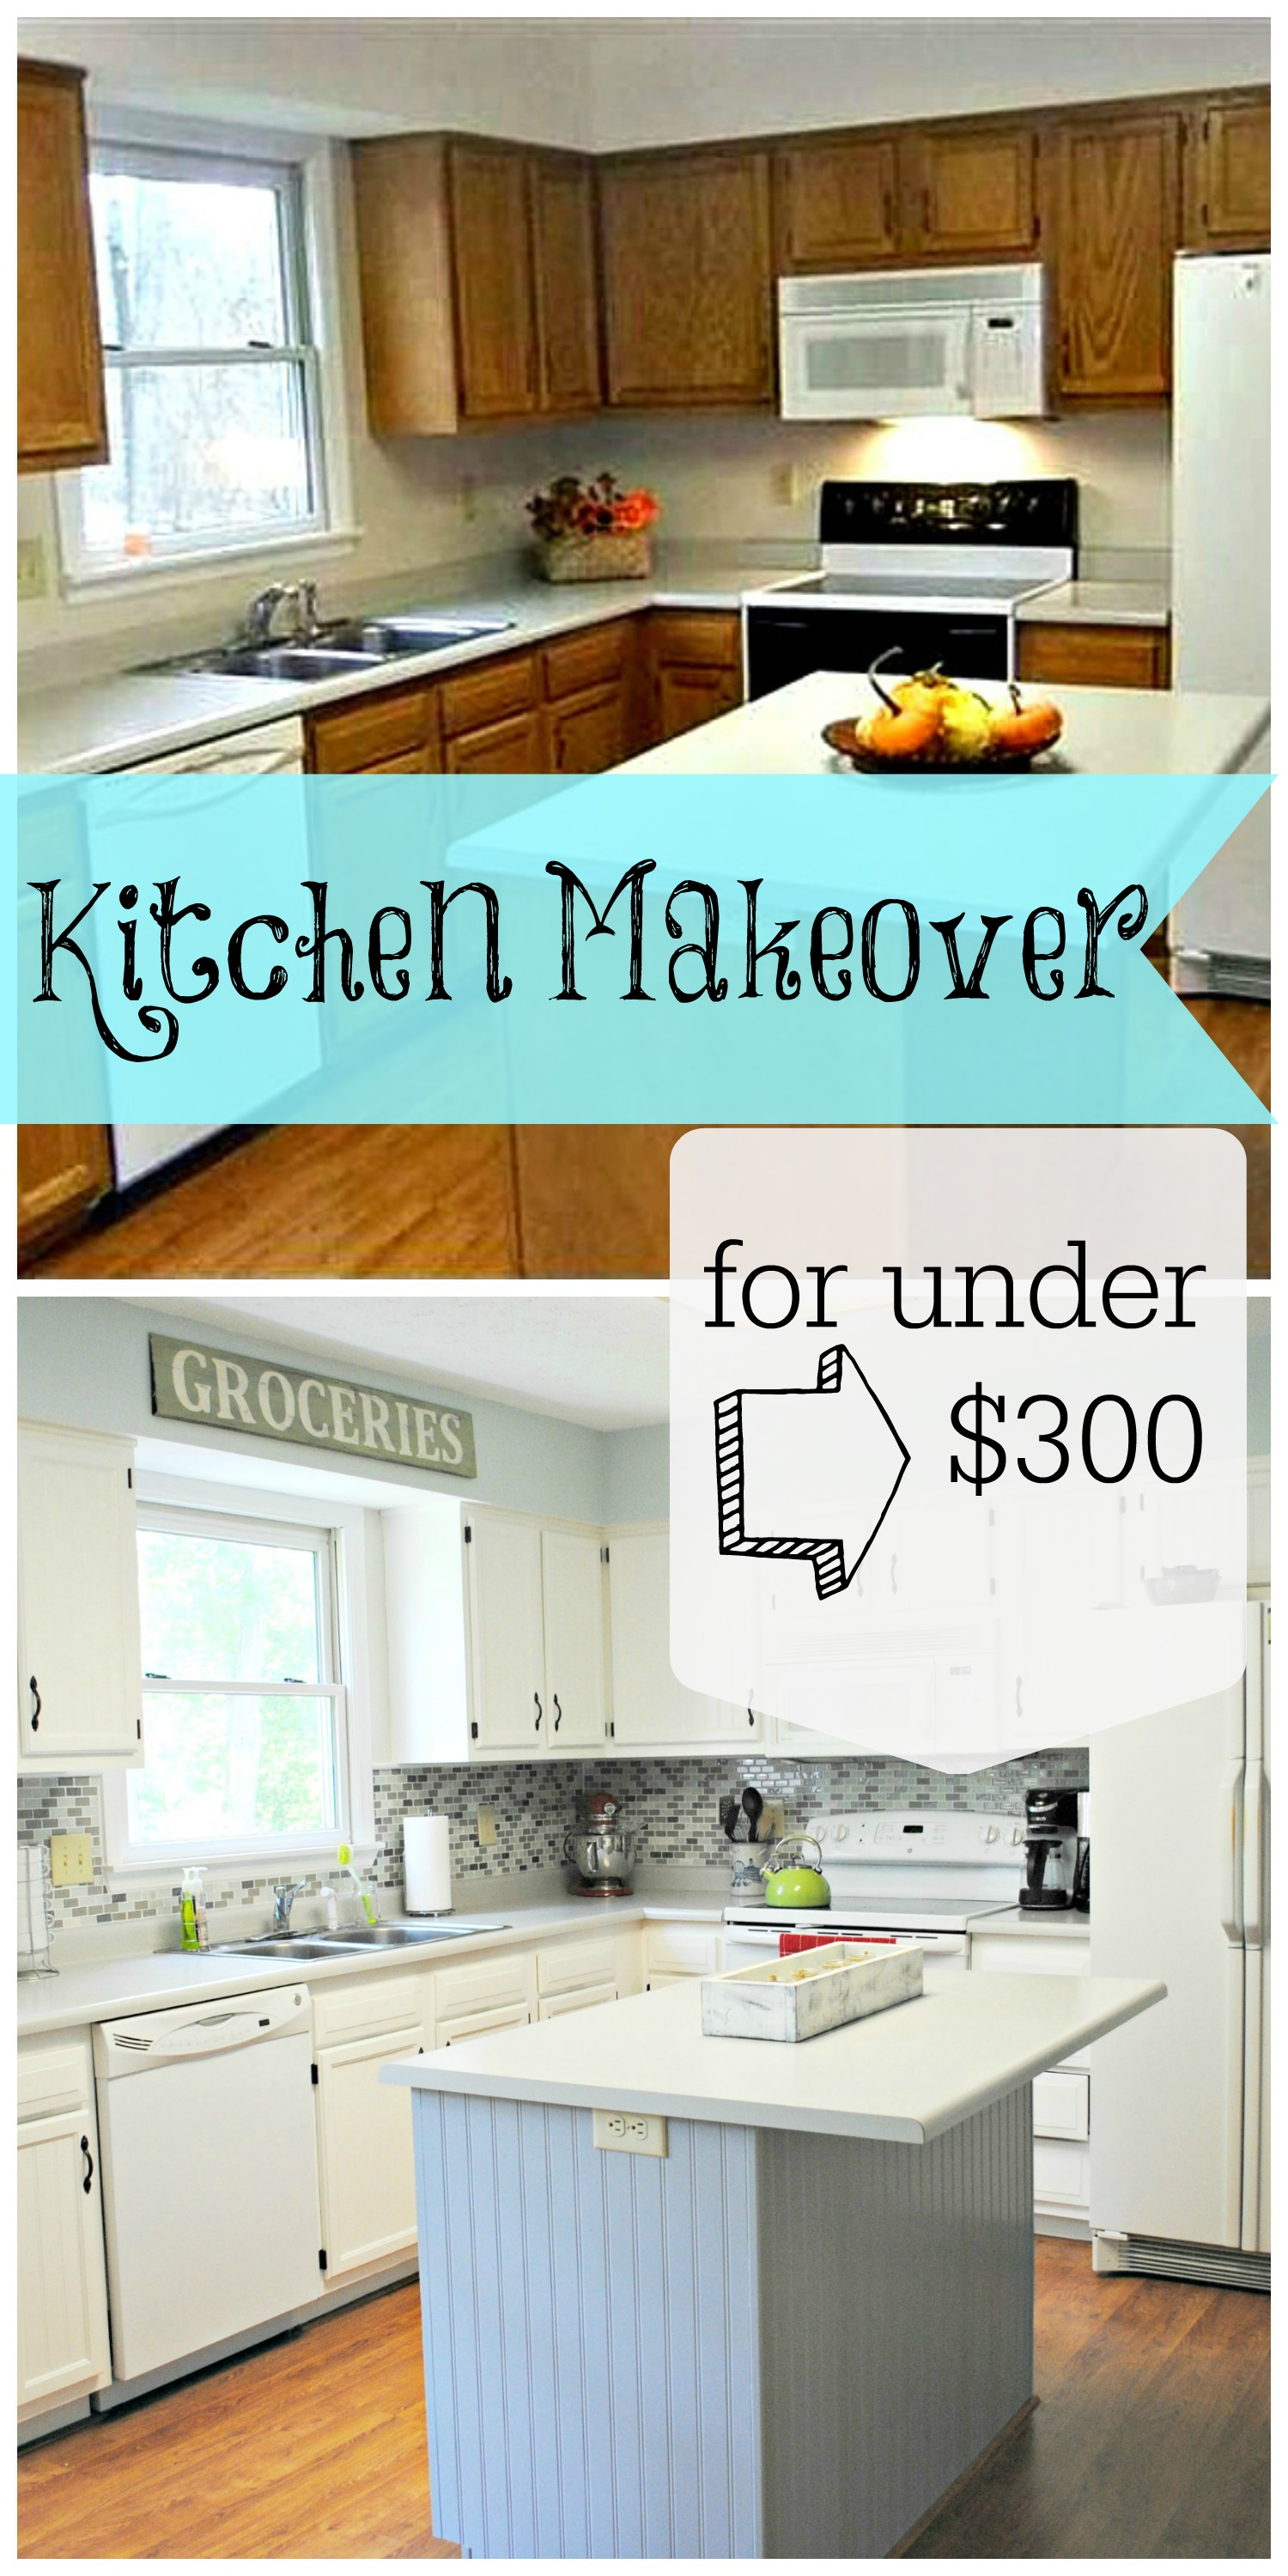 Kitchen Makeover for Under $300 (Seriously) - Place in Progress